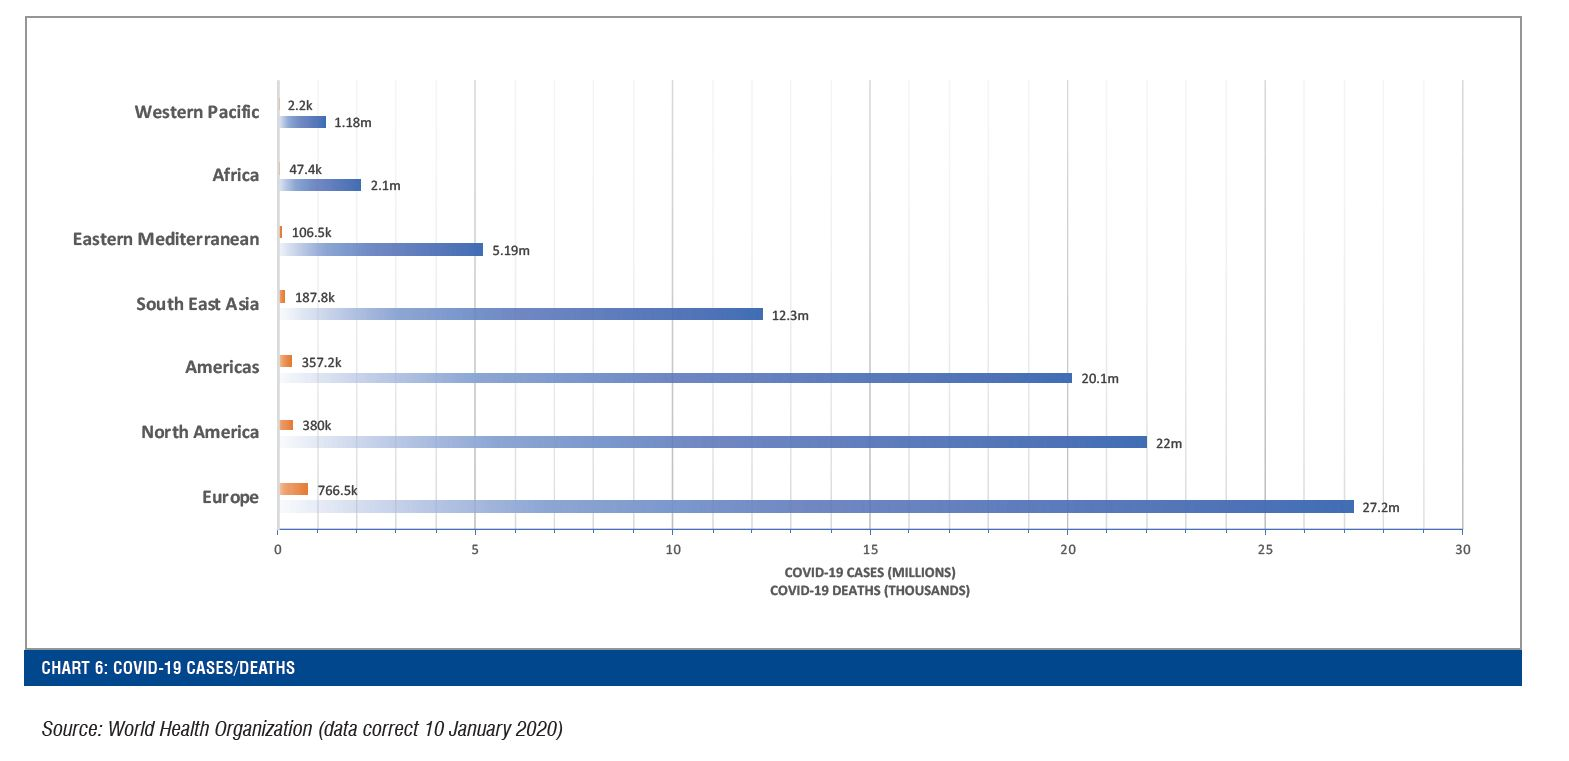 CHART 6: COVID-19 CASES/DEATHS